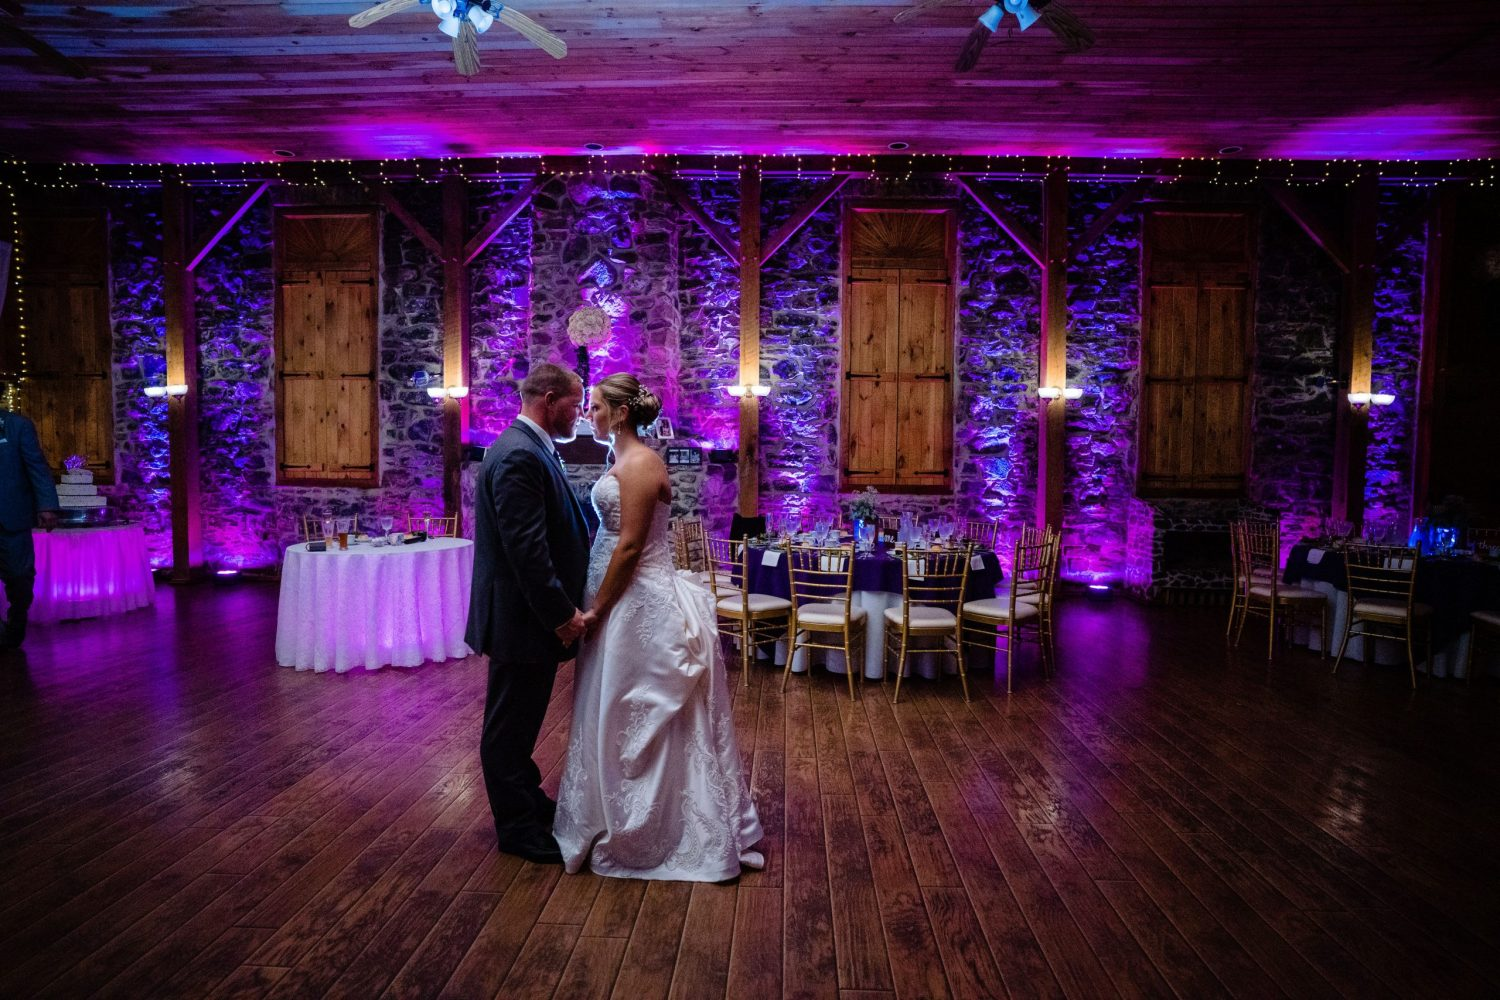 wedding dance photographer philadelphia pa